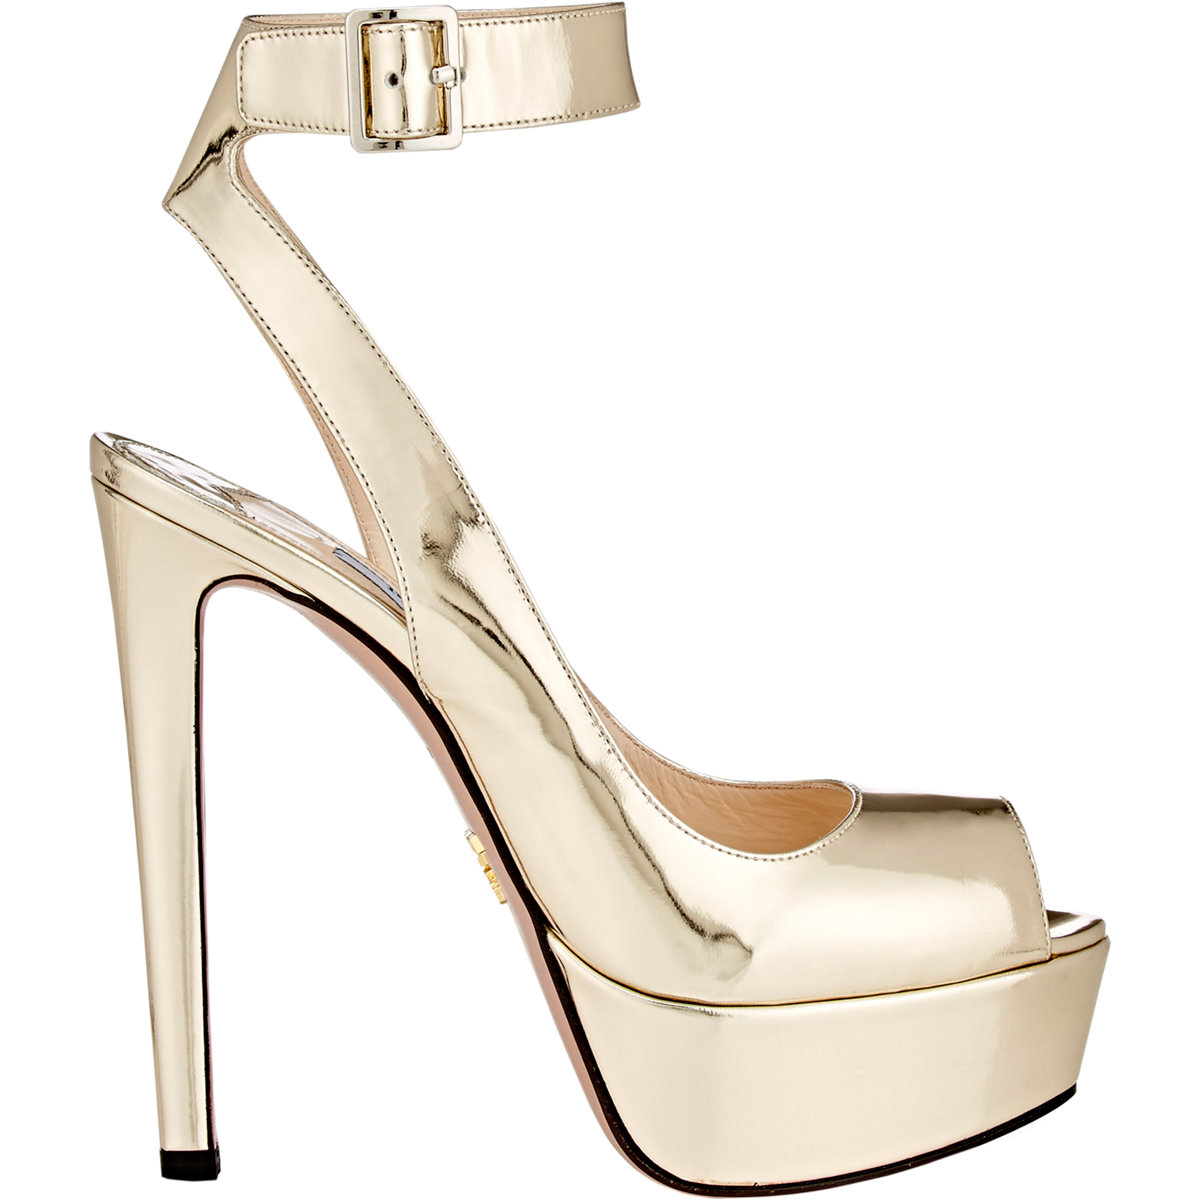 d55ad2241 Prada Women's Ankle-strap Sandals in Metallic - Lyst